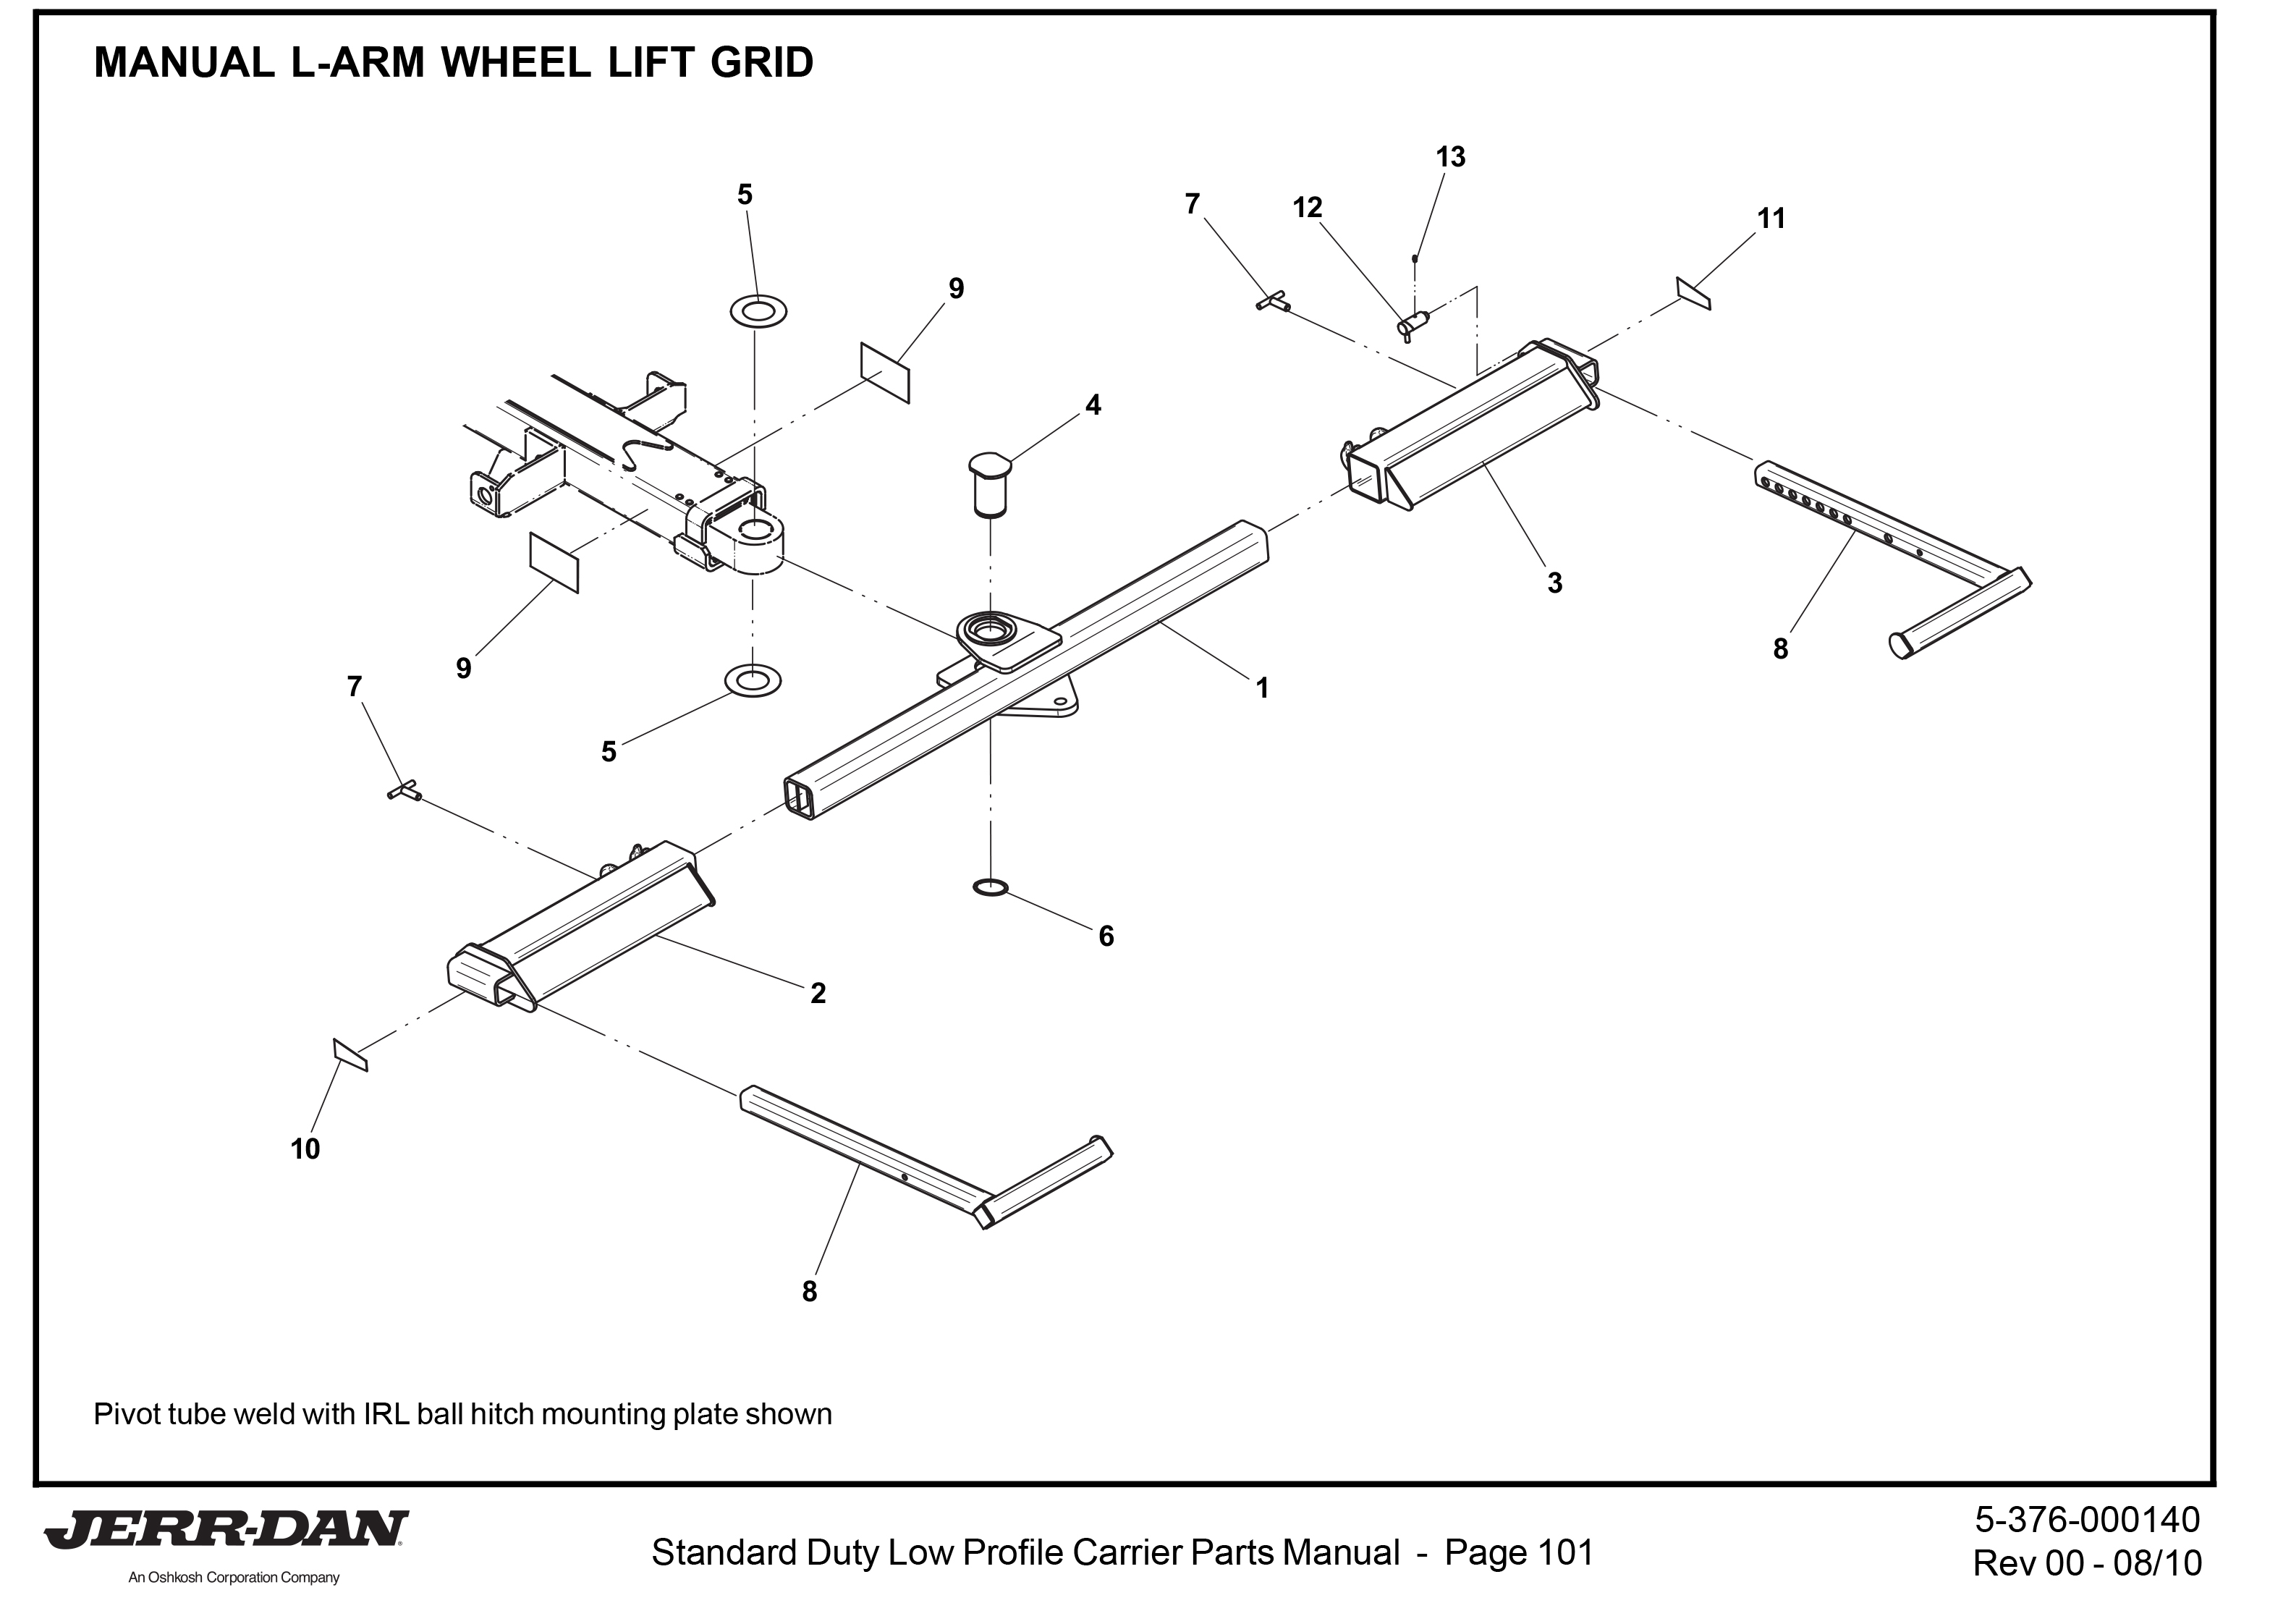 Jerr Dan Wheel Lift Parts Diagrams Jerr-Dan Carrier Parts